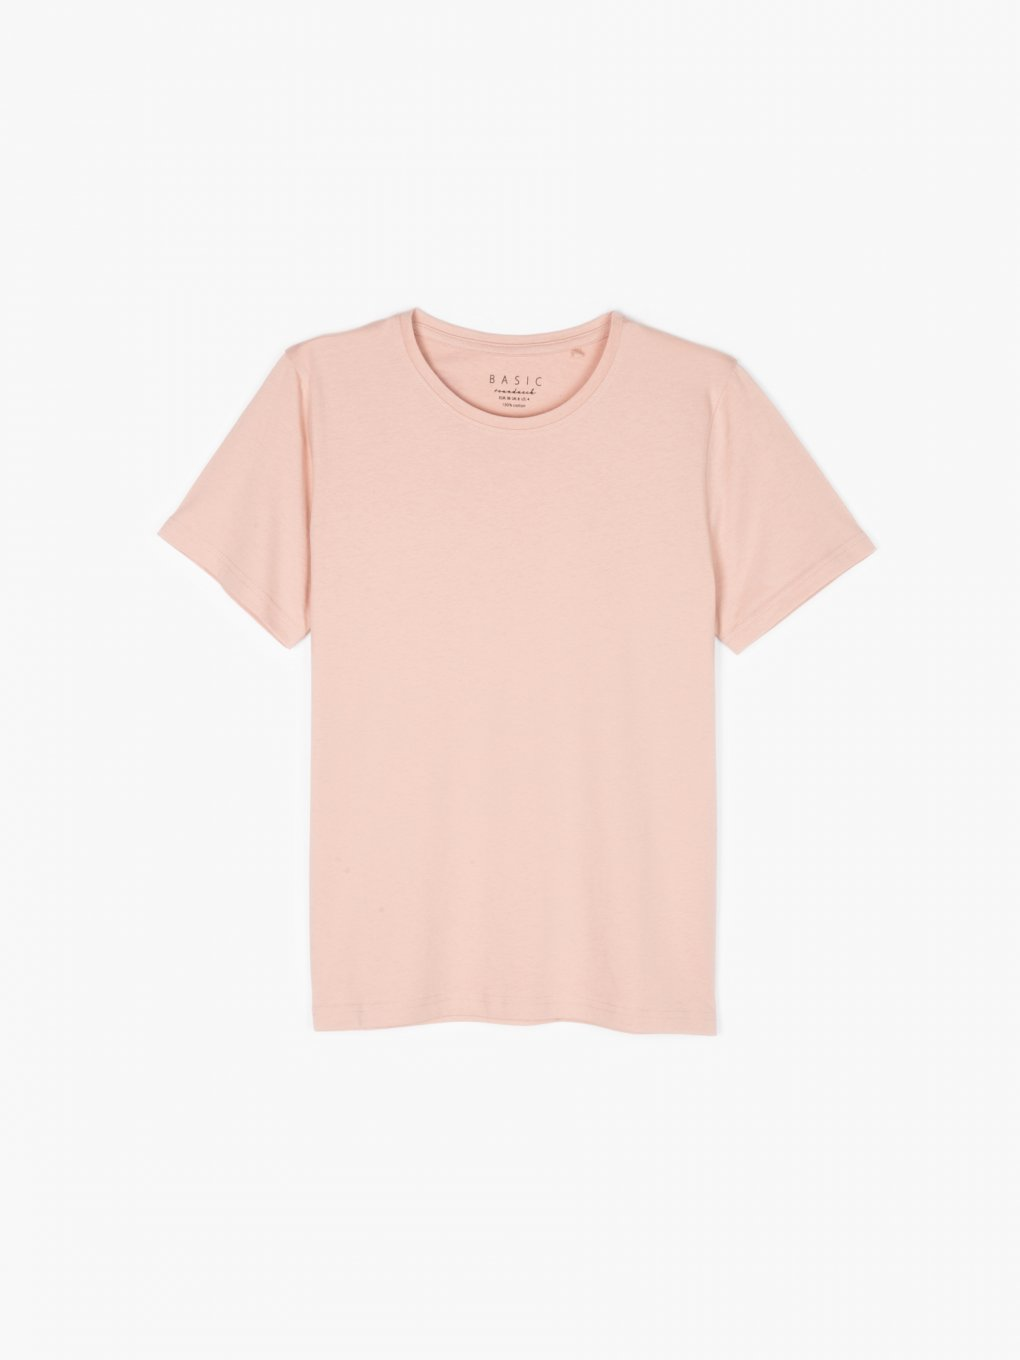 Basic short sleeve t-shirt